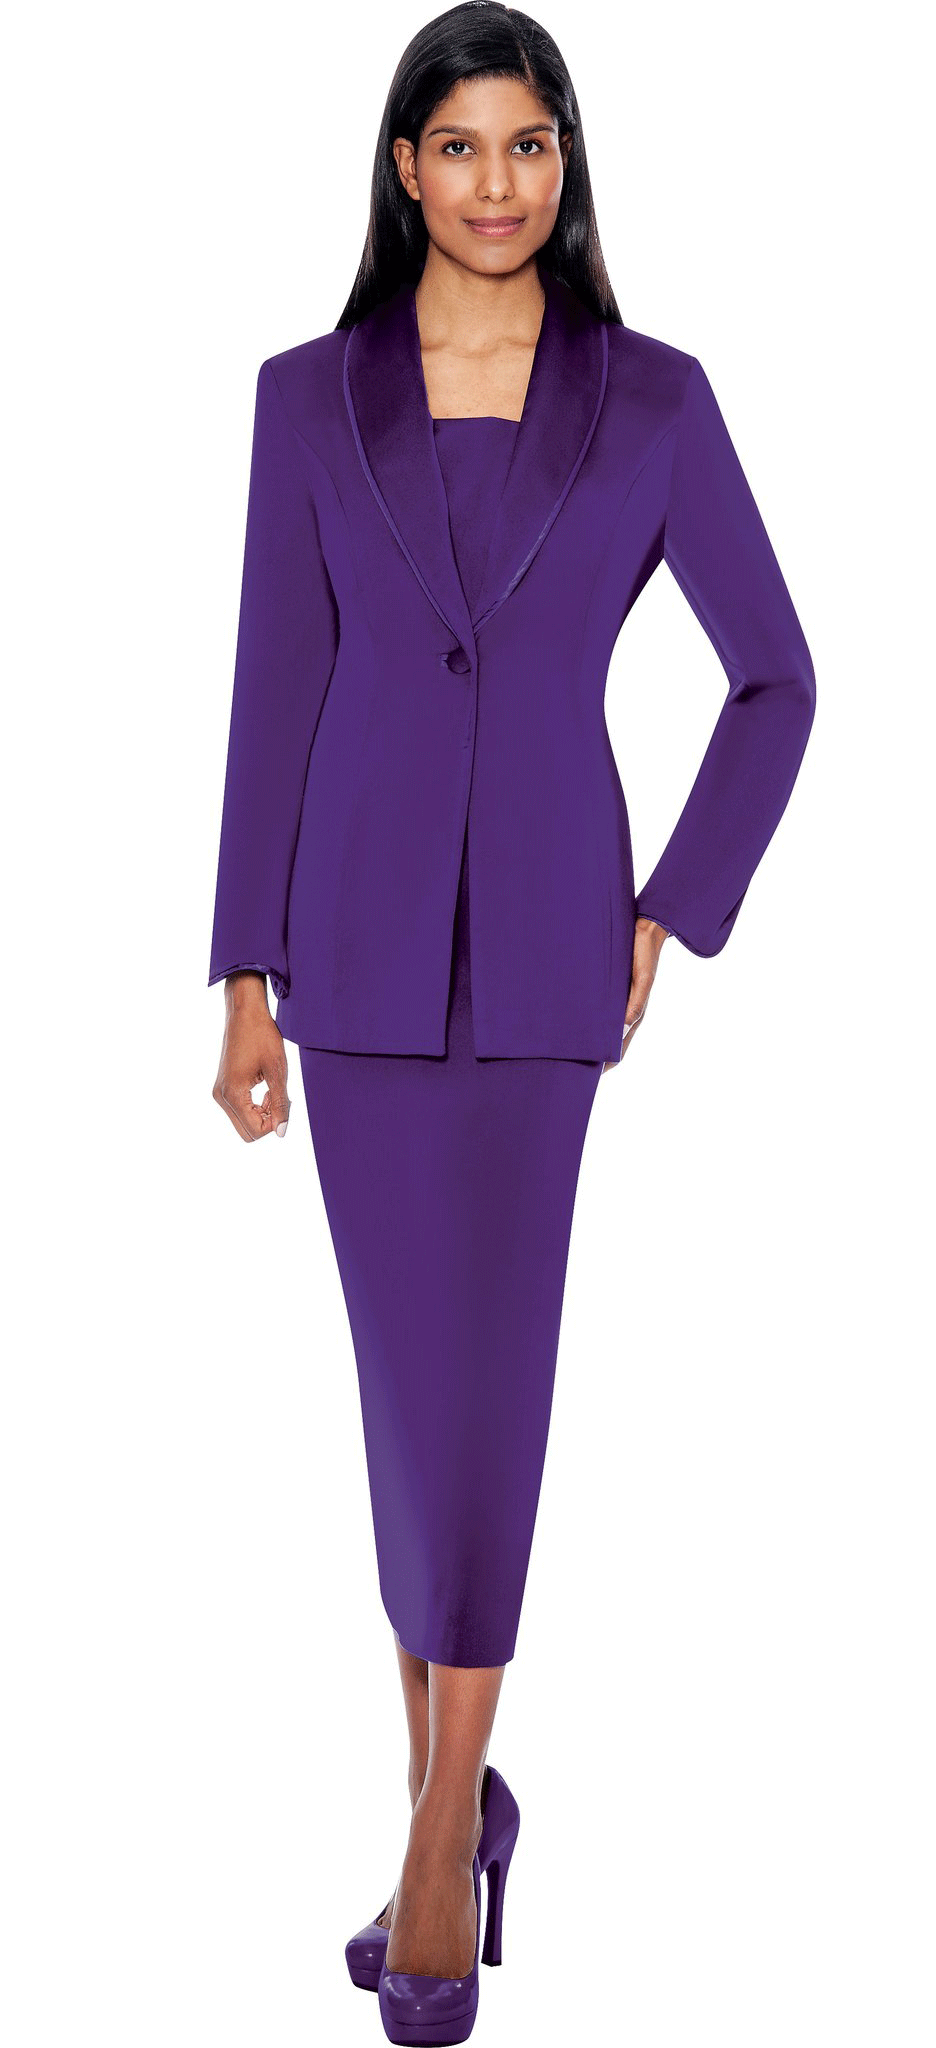 GMI Usher Suit 12272C-Purple - Church Suits For Less